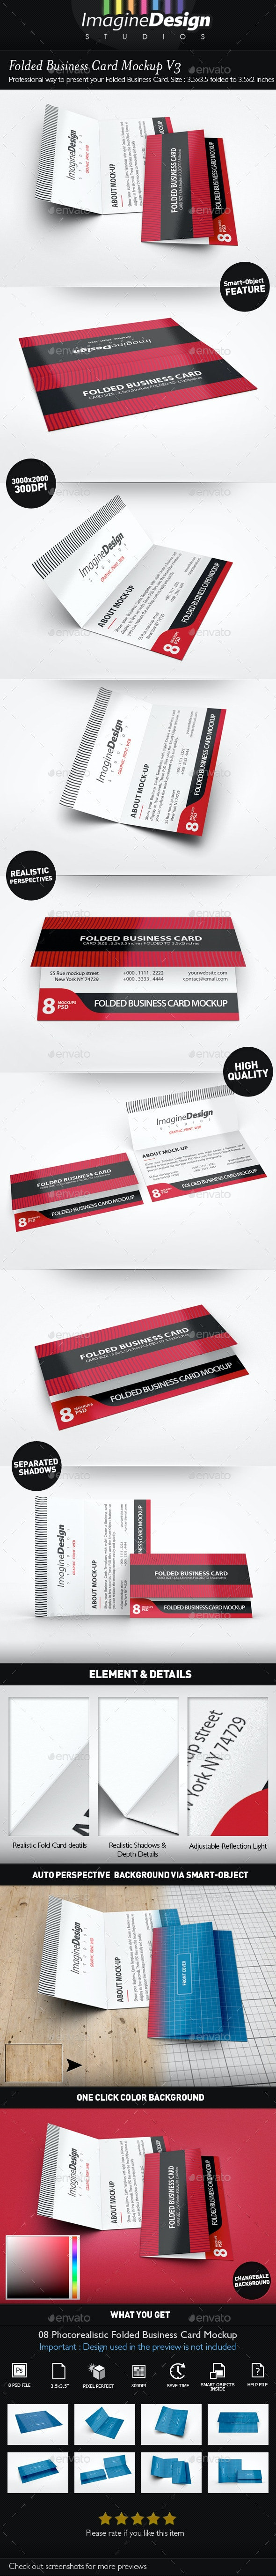 Folded Business Card Mockup V3 - Business Cards Print